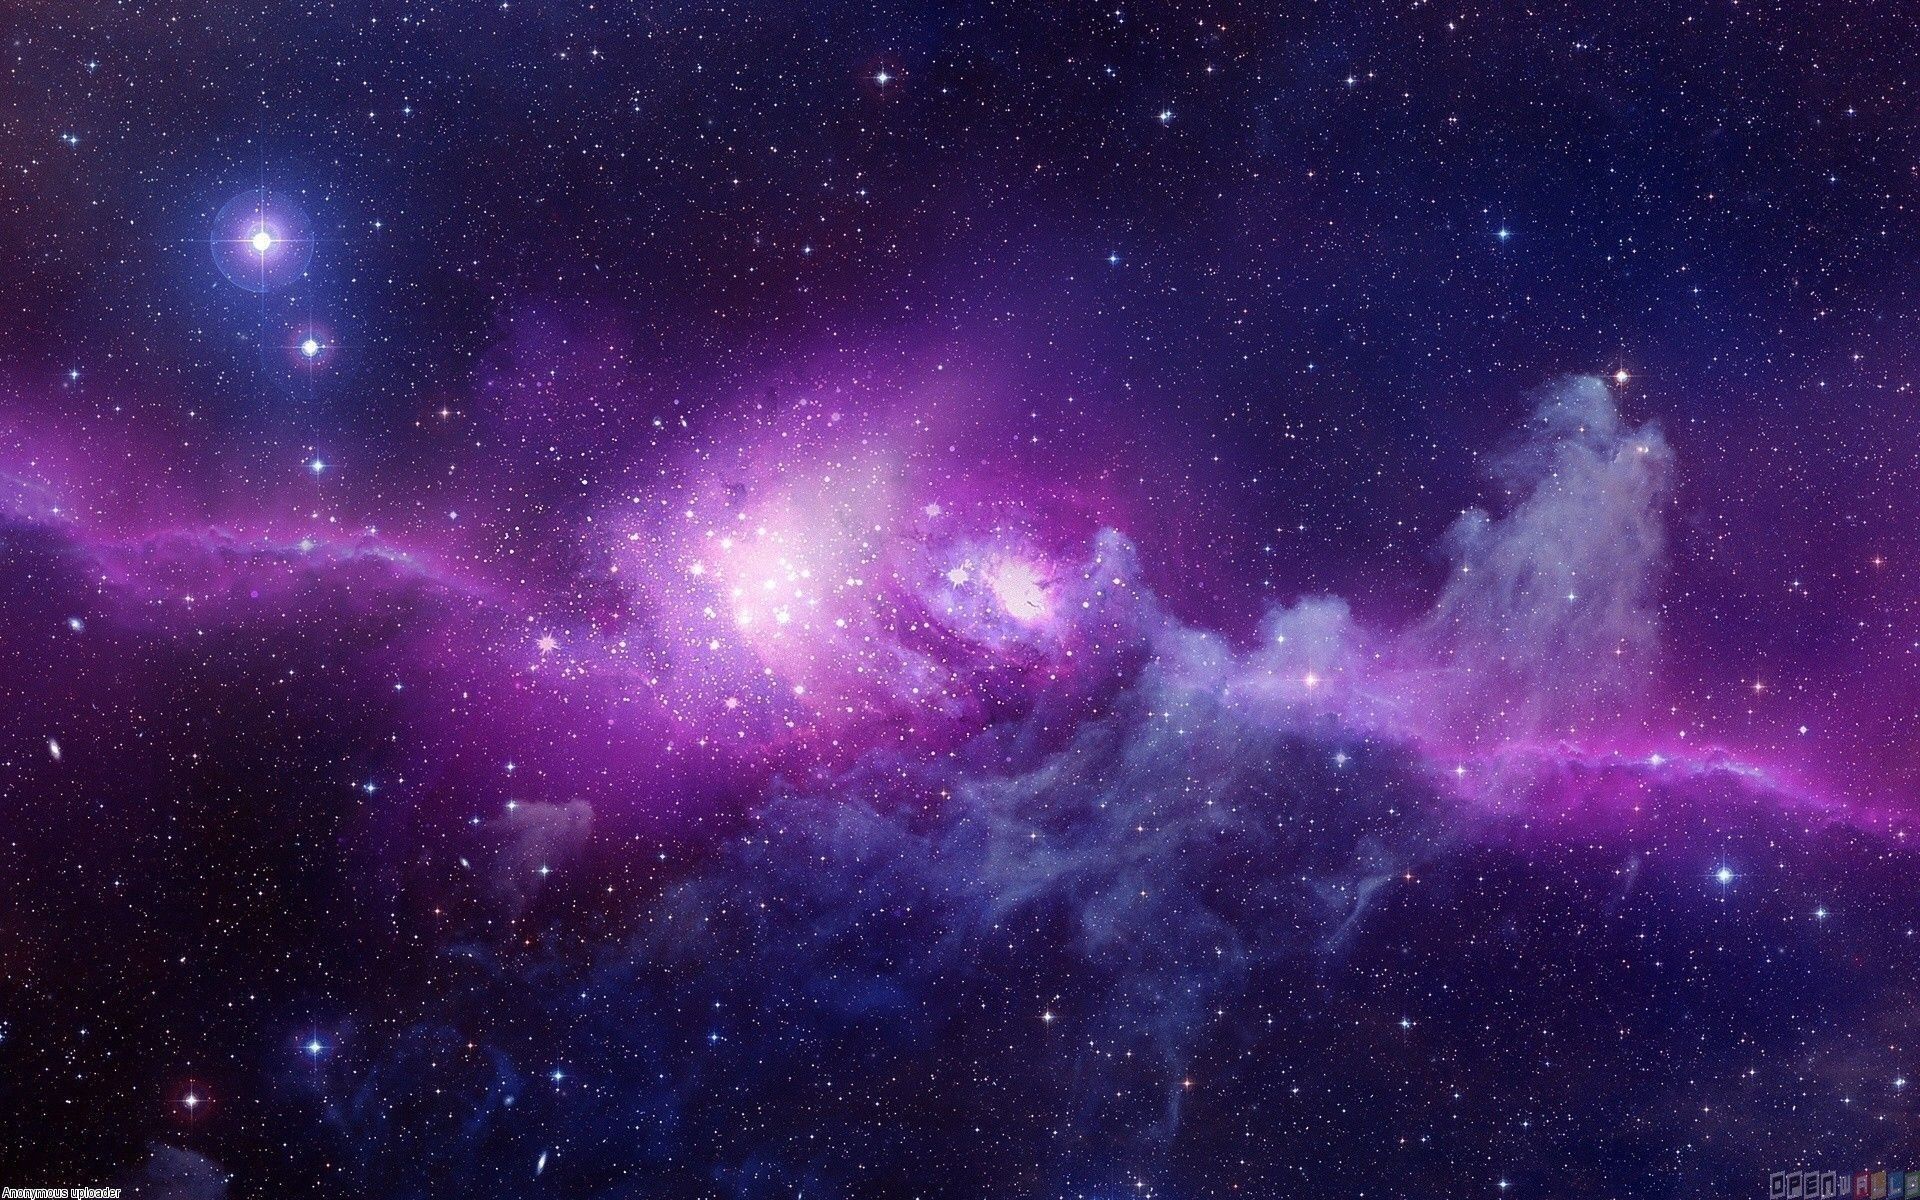 1920x1200 space tumblr wallpaper hd with wallpapers high quality resolution on 3d category similar